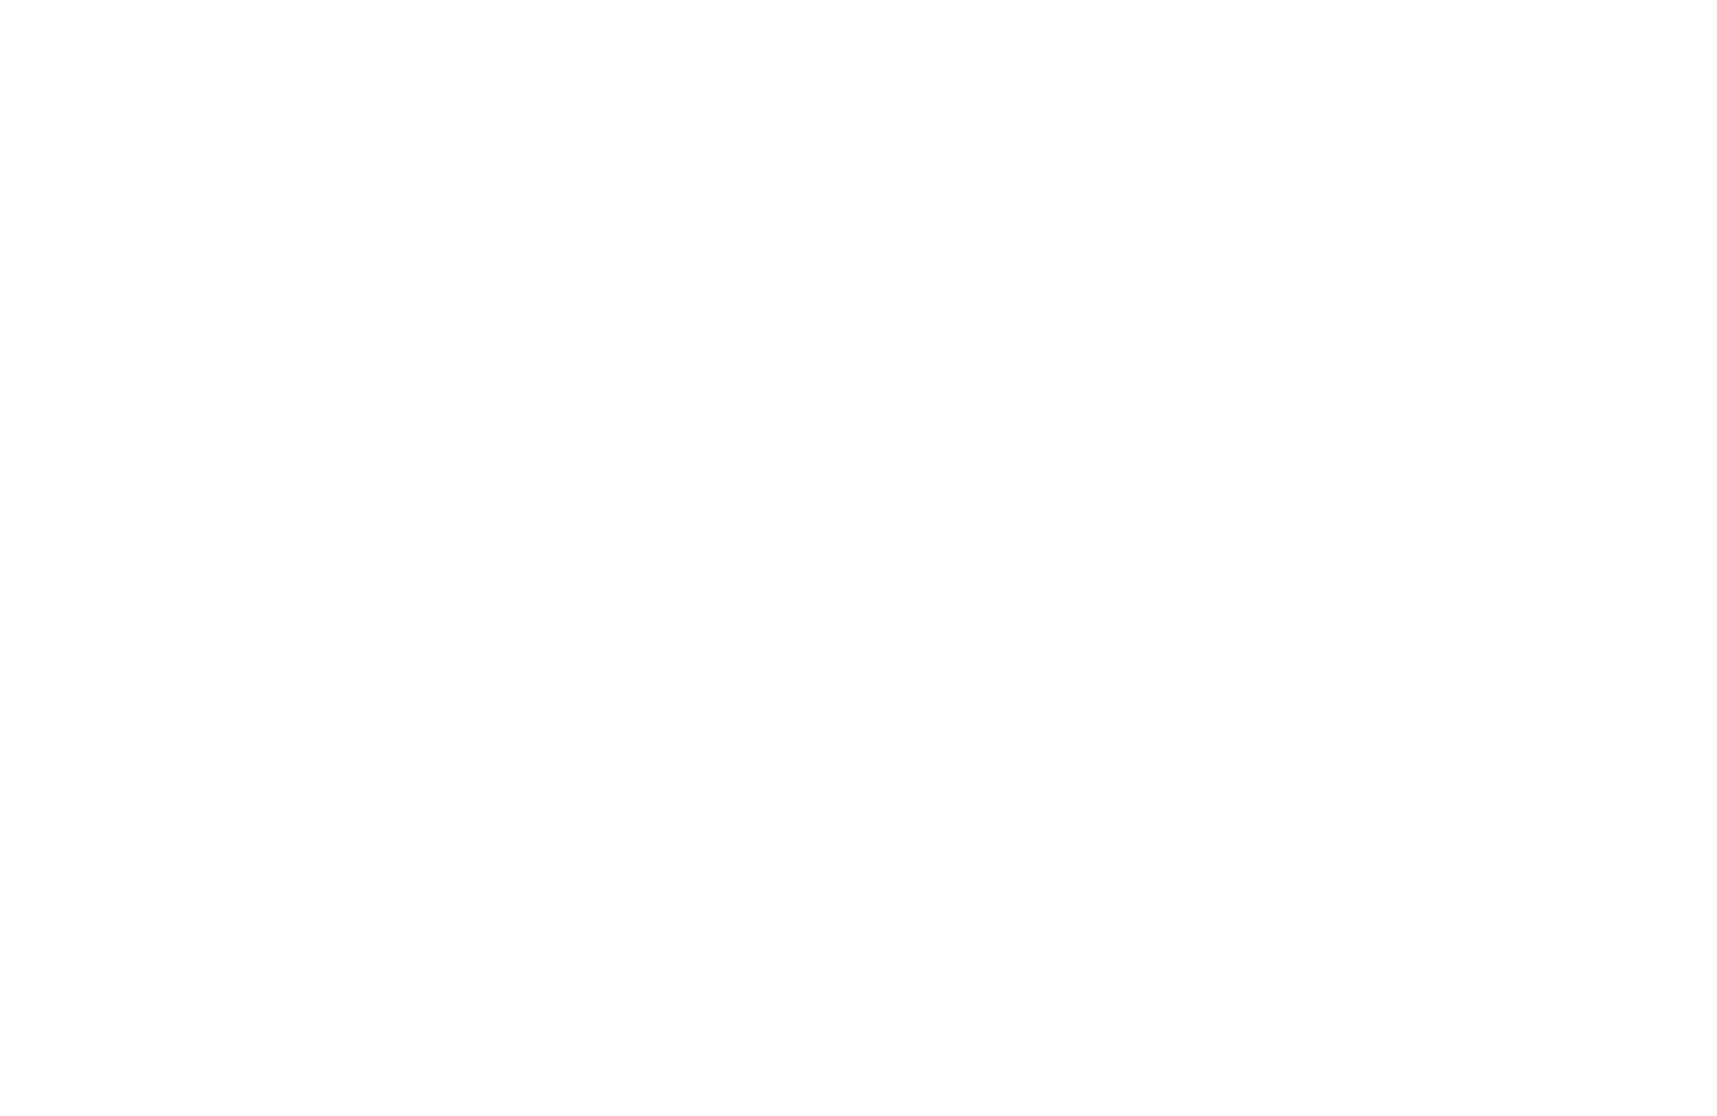 Restaurant King of India